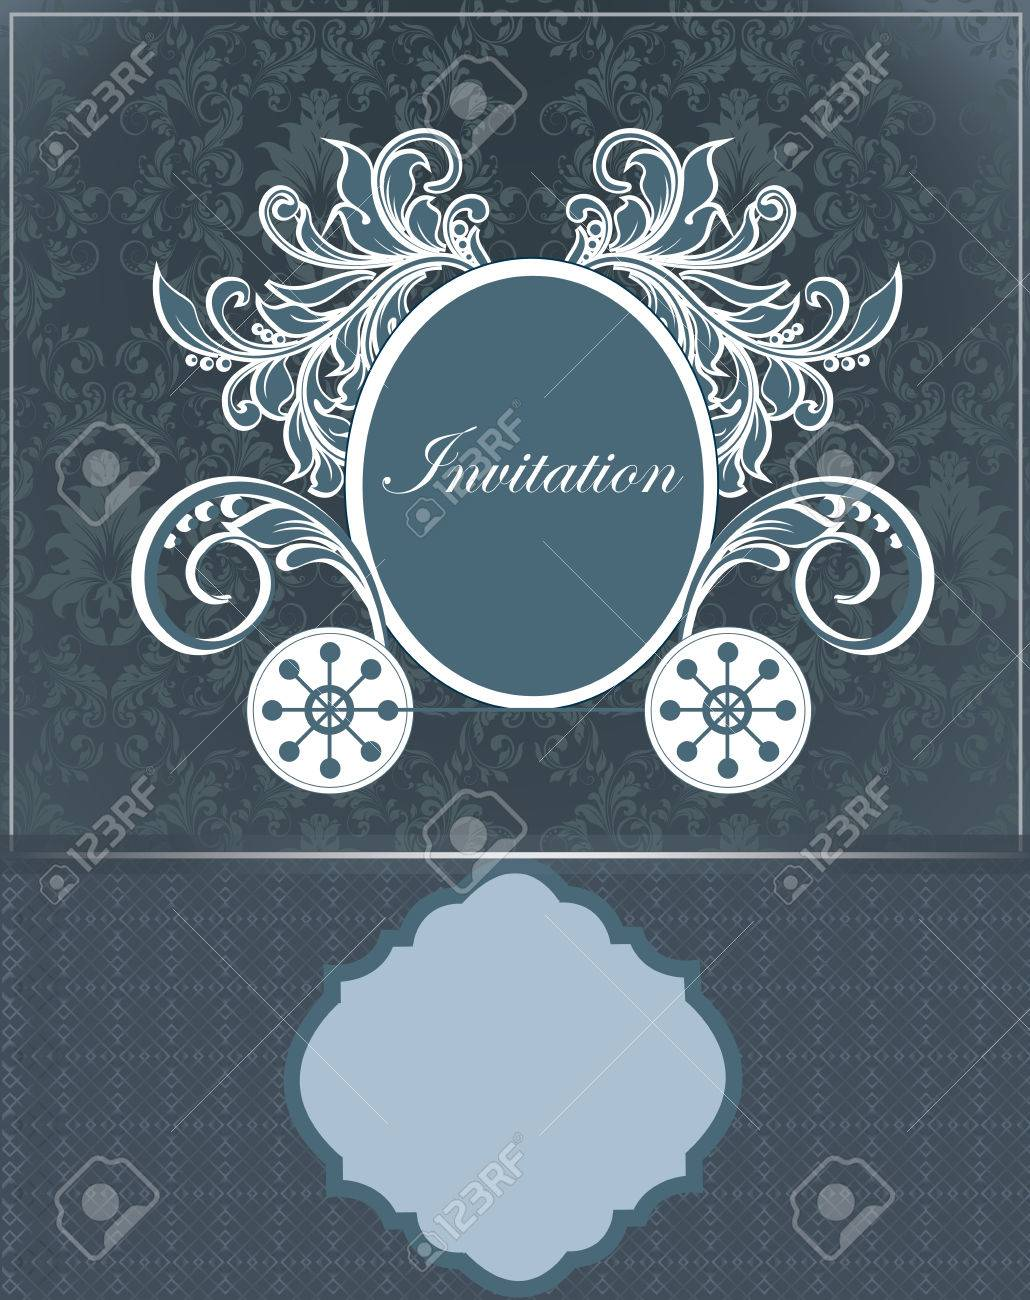 Vintage invitation card with ornate elegant retro abstract floral vector vintage invitation card with ornate elegant retro abstract floral design cadet blue flowers and leaves on dark gray and midnight blue background izmirmasajfo